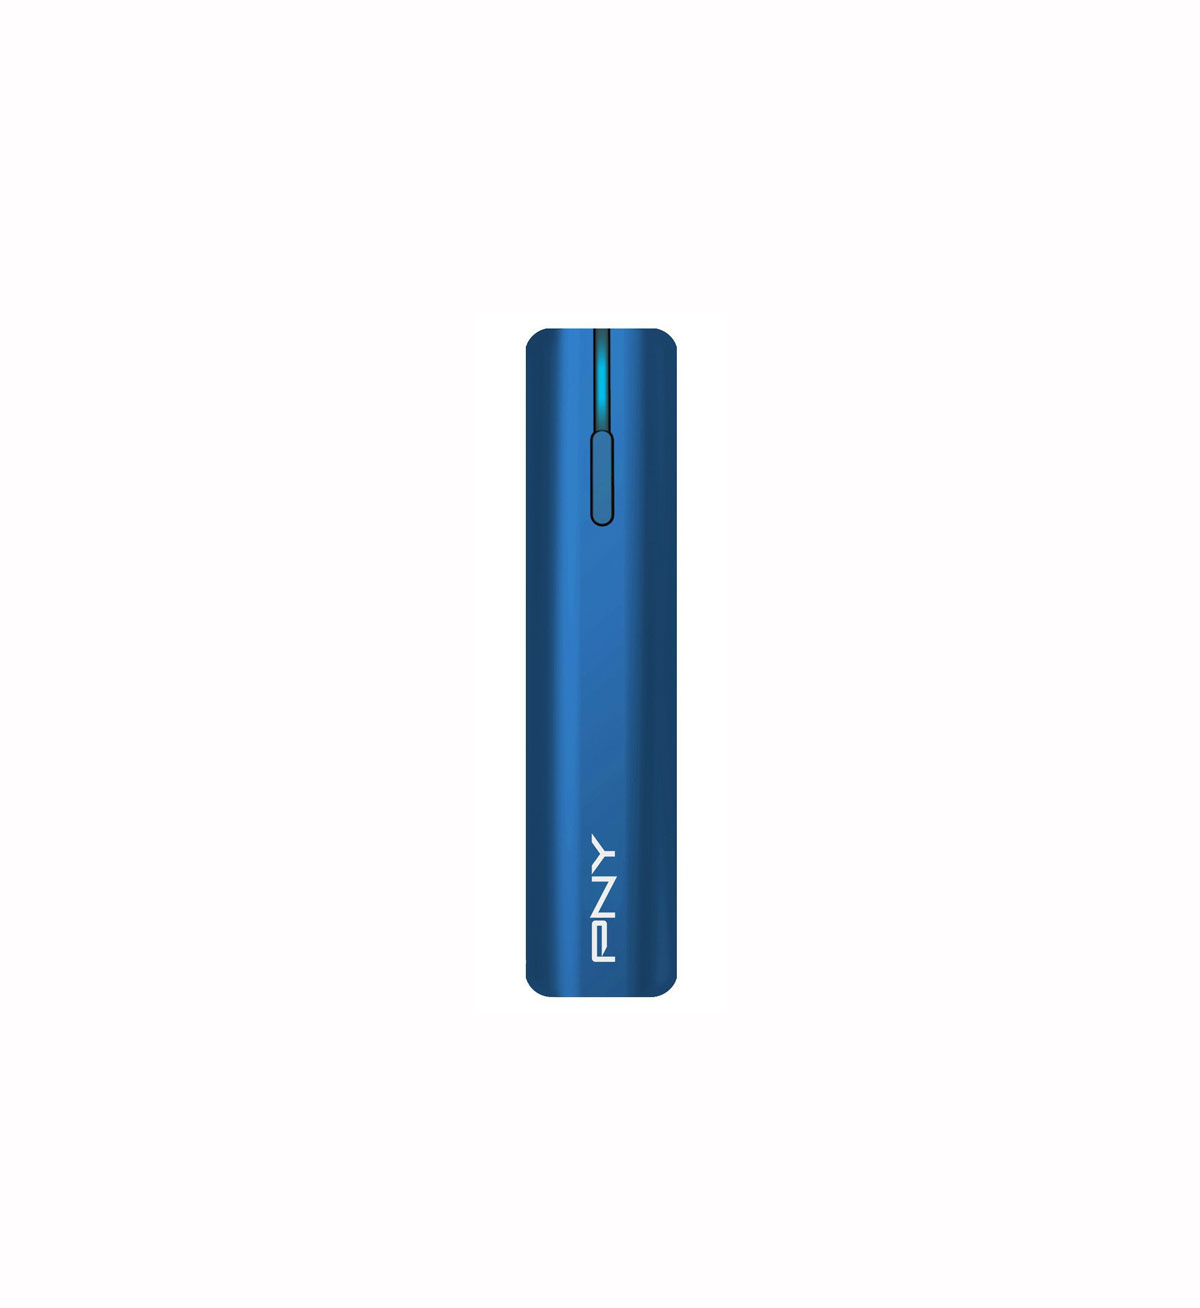 PNY Portable Charger